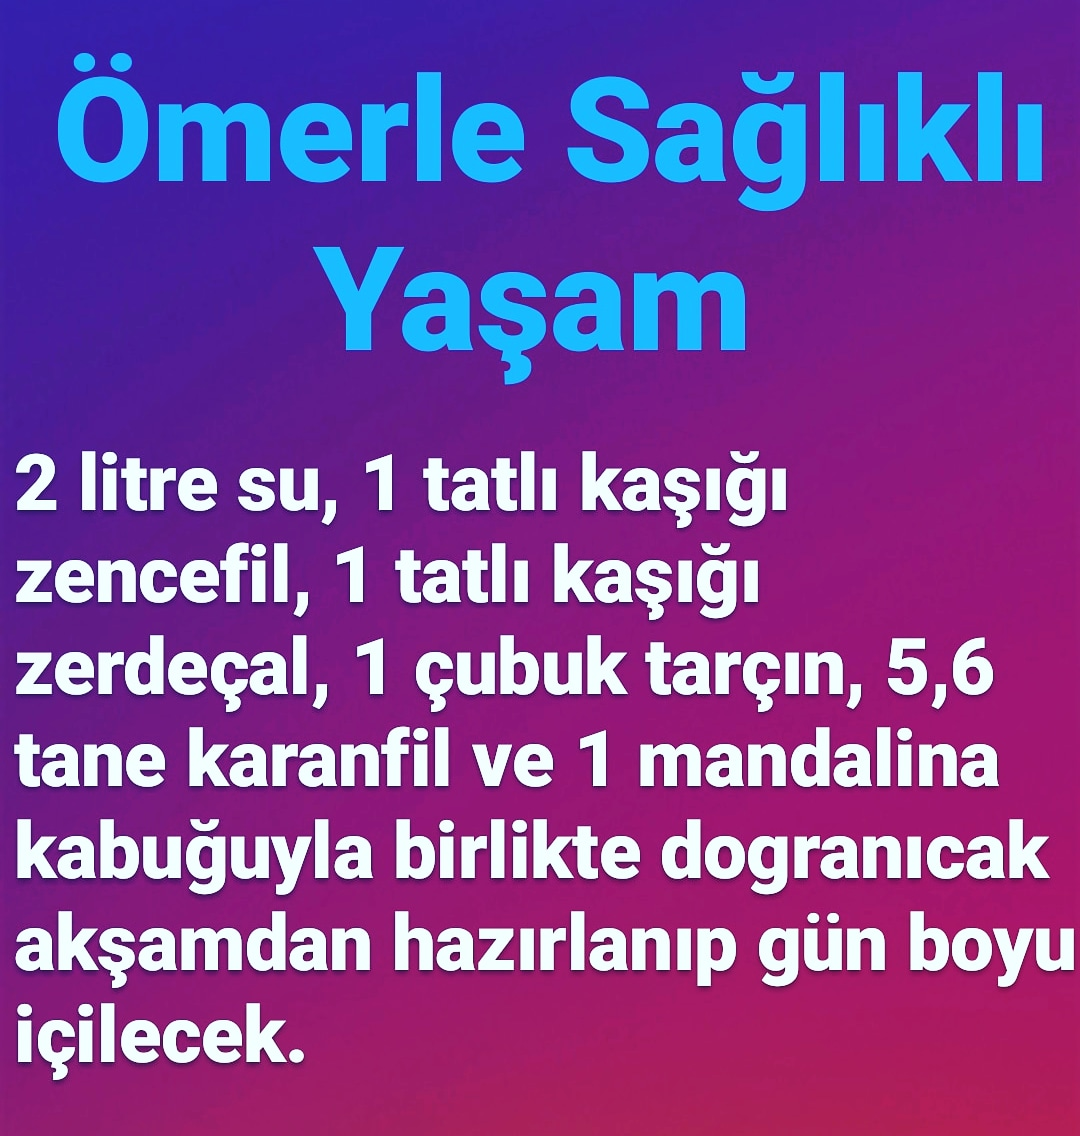 Detoks suyumuz geldi. #sağlıklıbeslenme #evdekal #sağlıklıyaşam #love #TagsForLikes #TFLers #iphoneonly #instagood #bestoftheday #tweegram #photooftheday #20likes #amazing #smile #follow4follow #like4like #look #picoftheday #food #instadaily #instafollow #followme #girl #instago